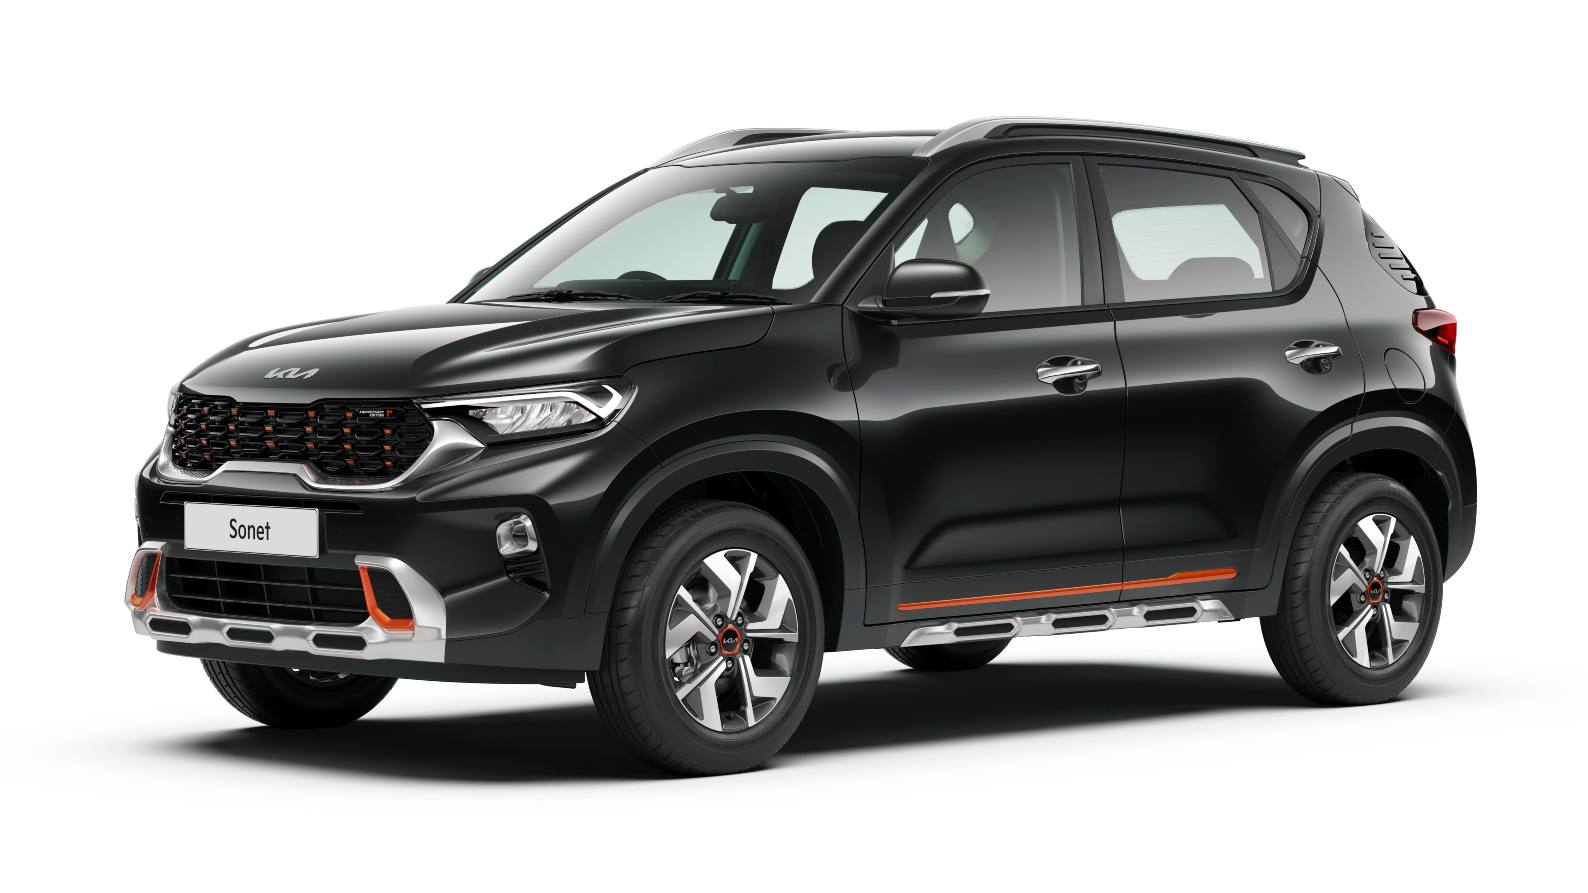 Tangerine accents on the outside will distinguish the First Anniversary Edition from the standard Kia Sonet. Image: Kia